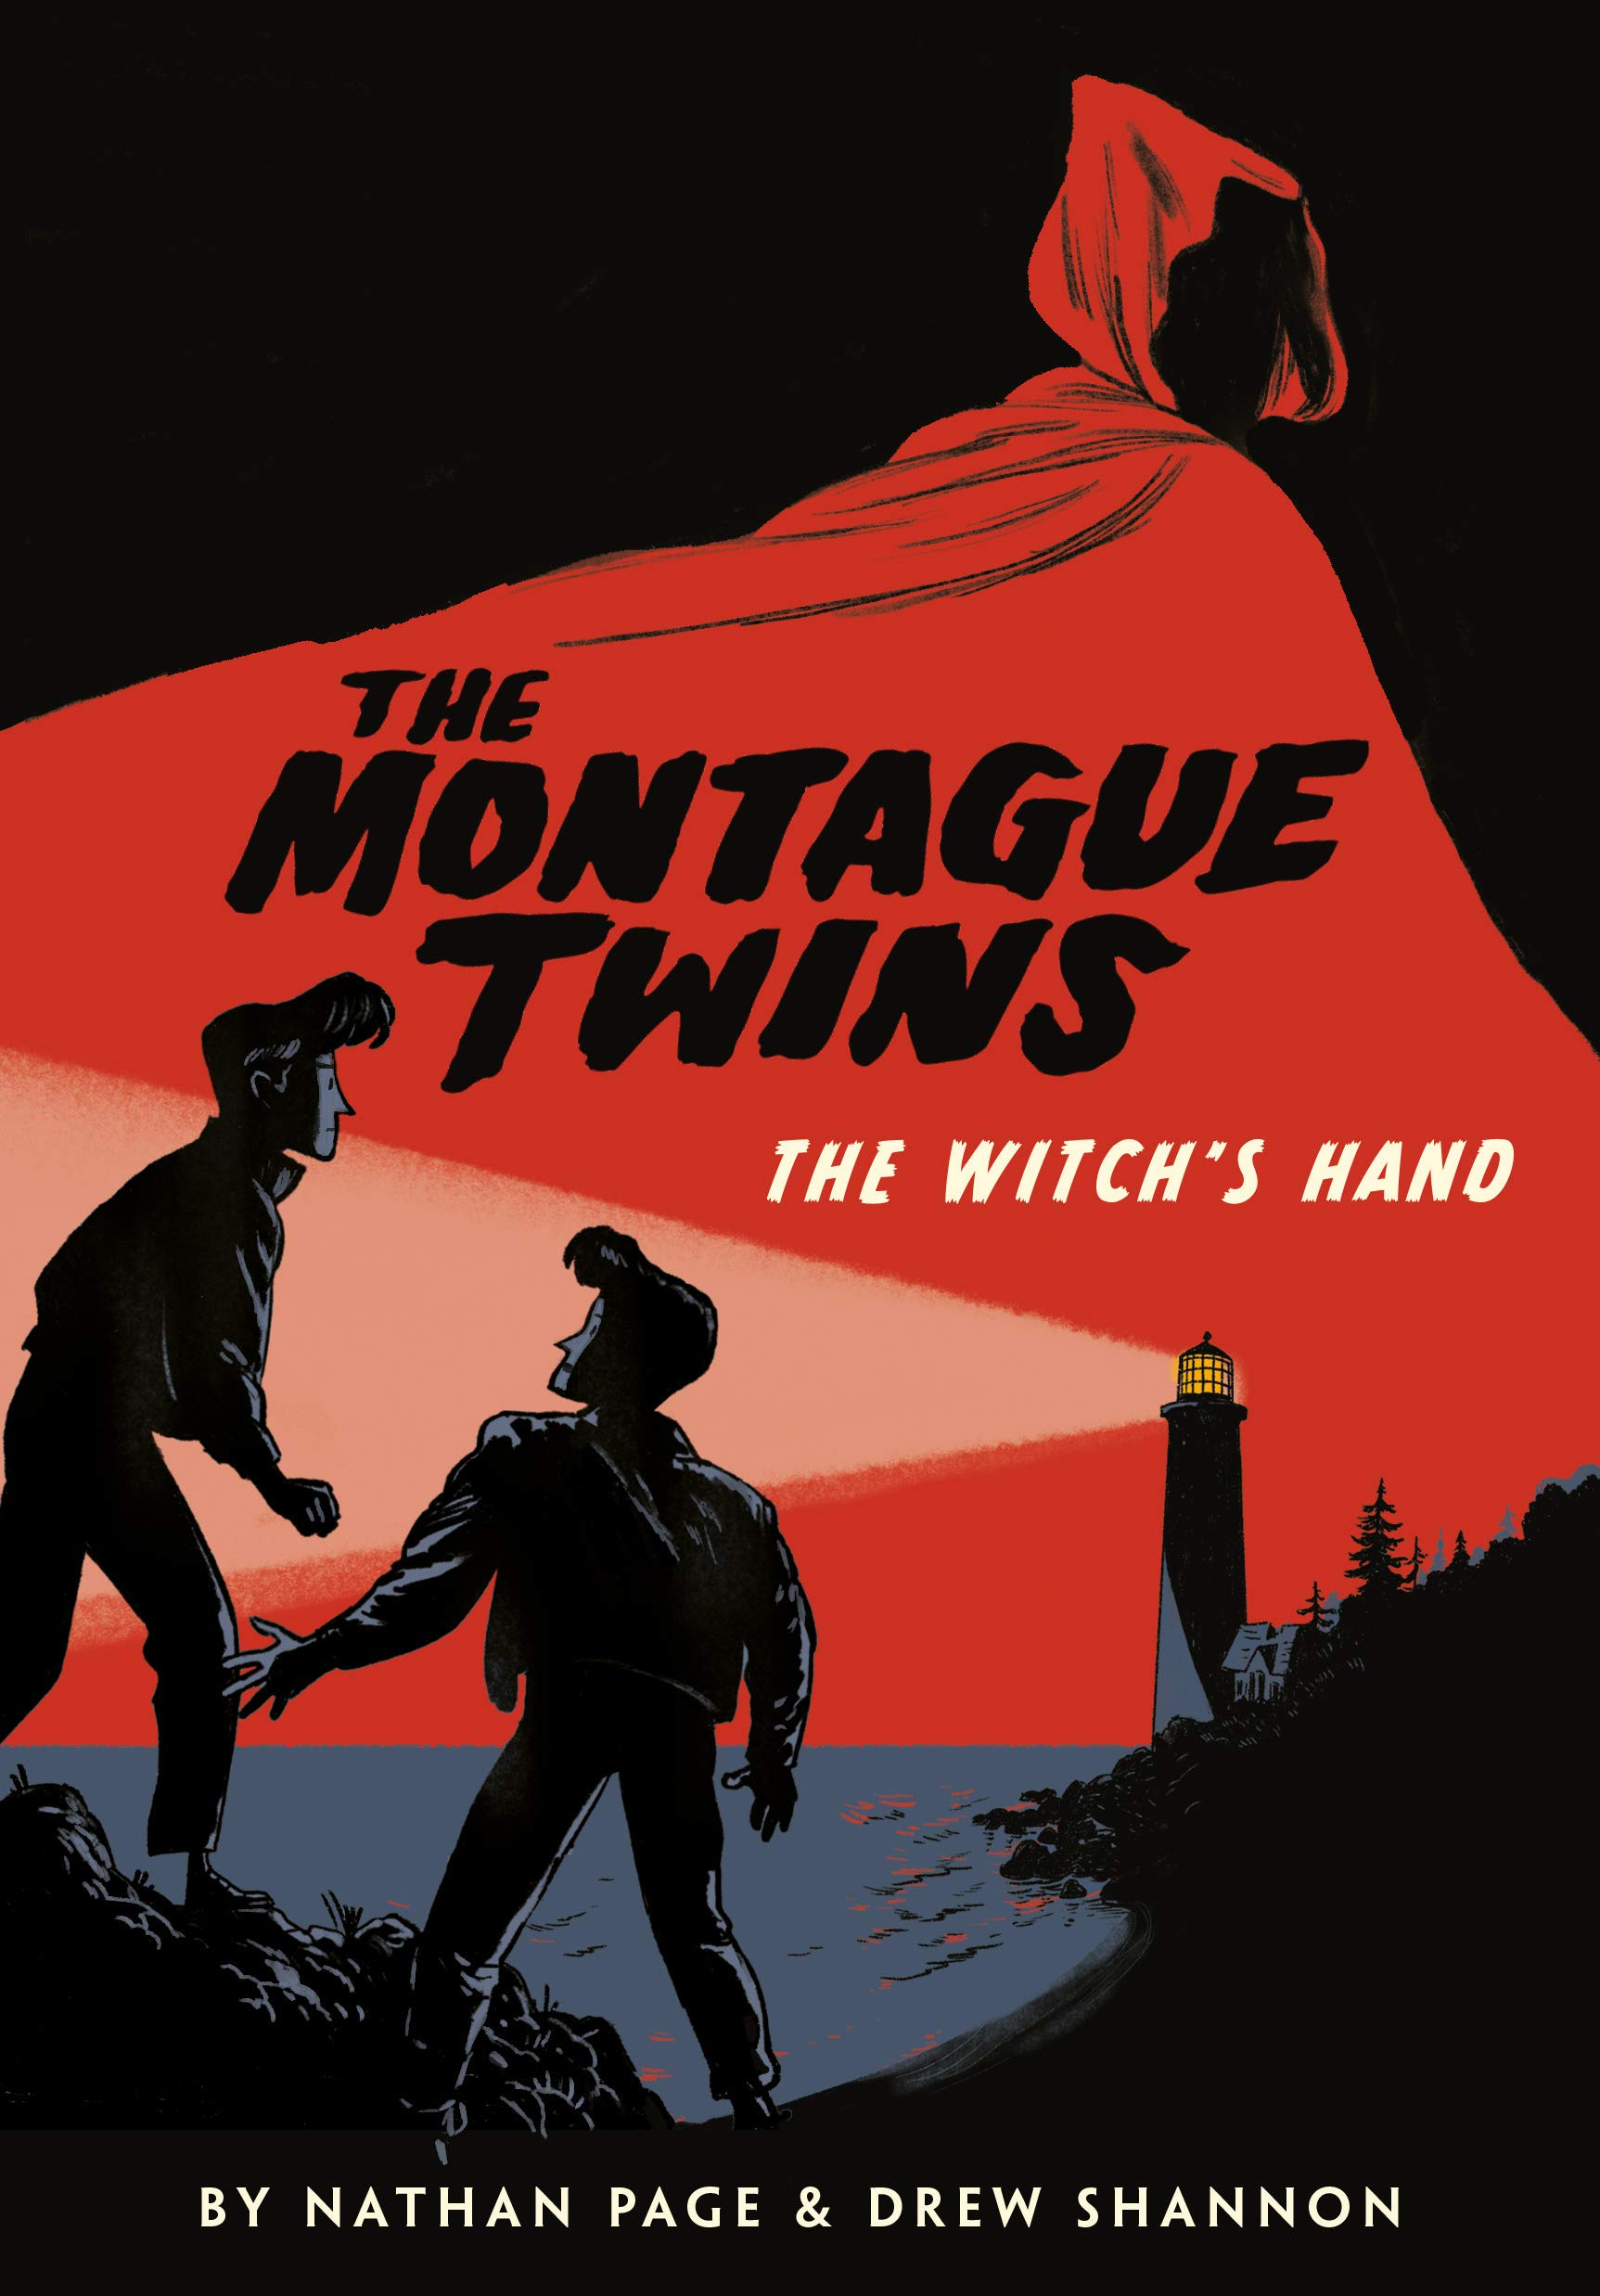 The Montague Twins: Volume 1, The Witch's Hand